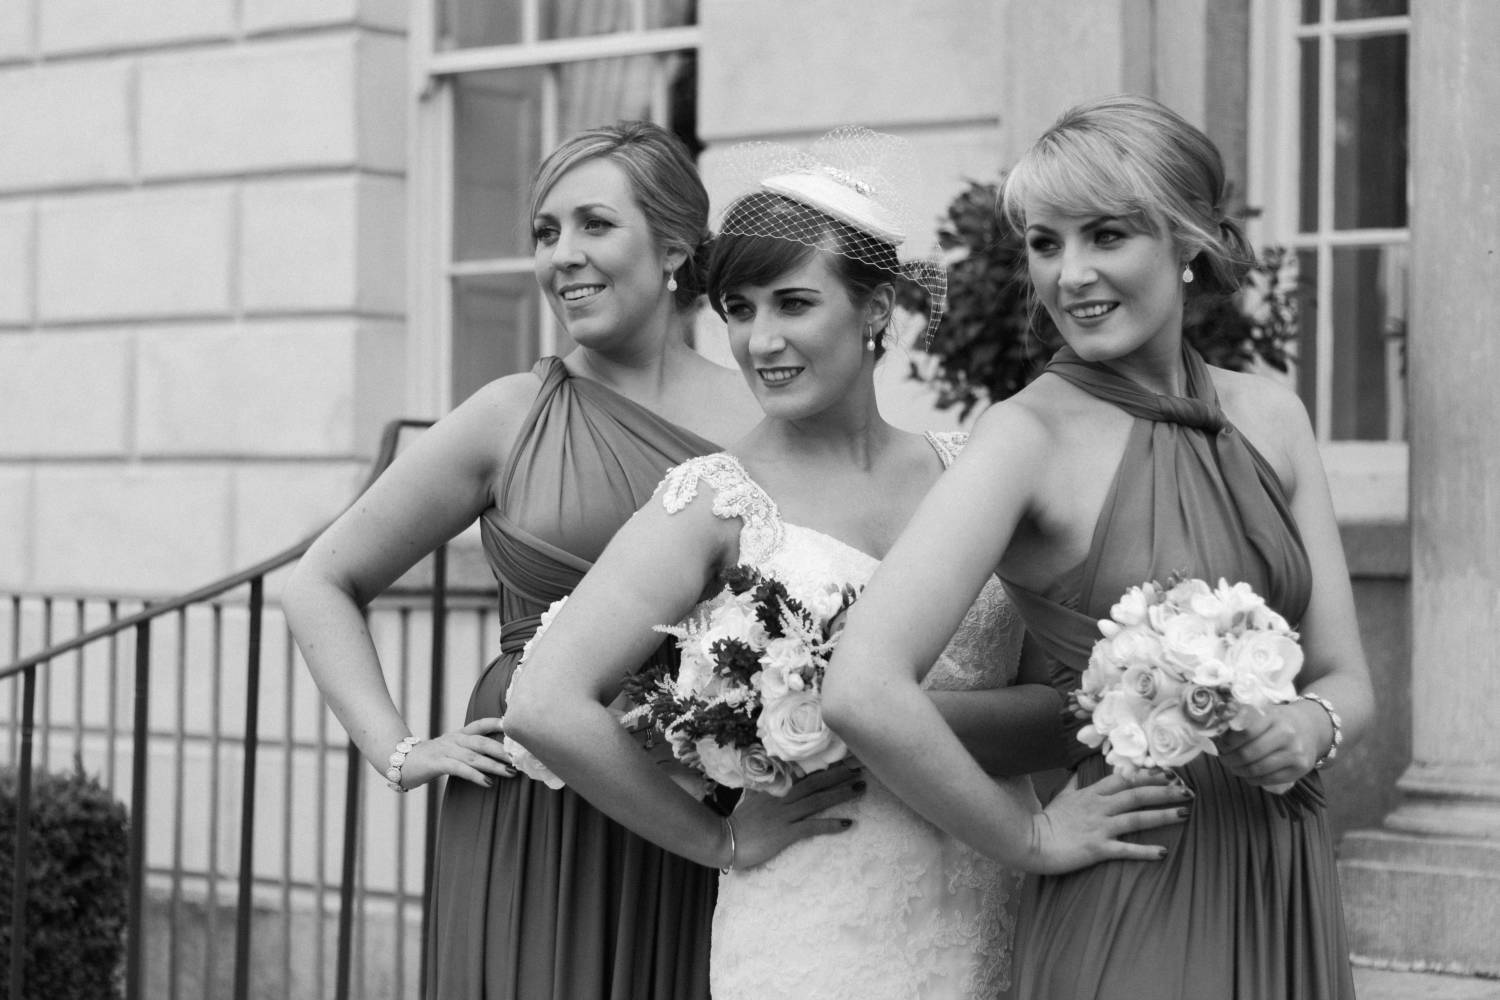 Kathy Silke Photography - Ireland Wedding Photographer - Group Photos -378